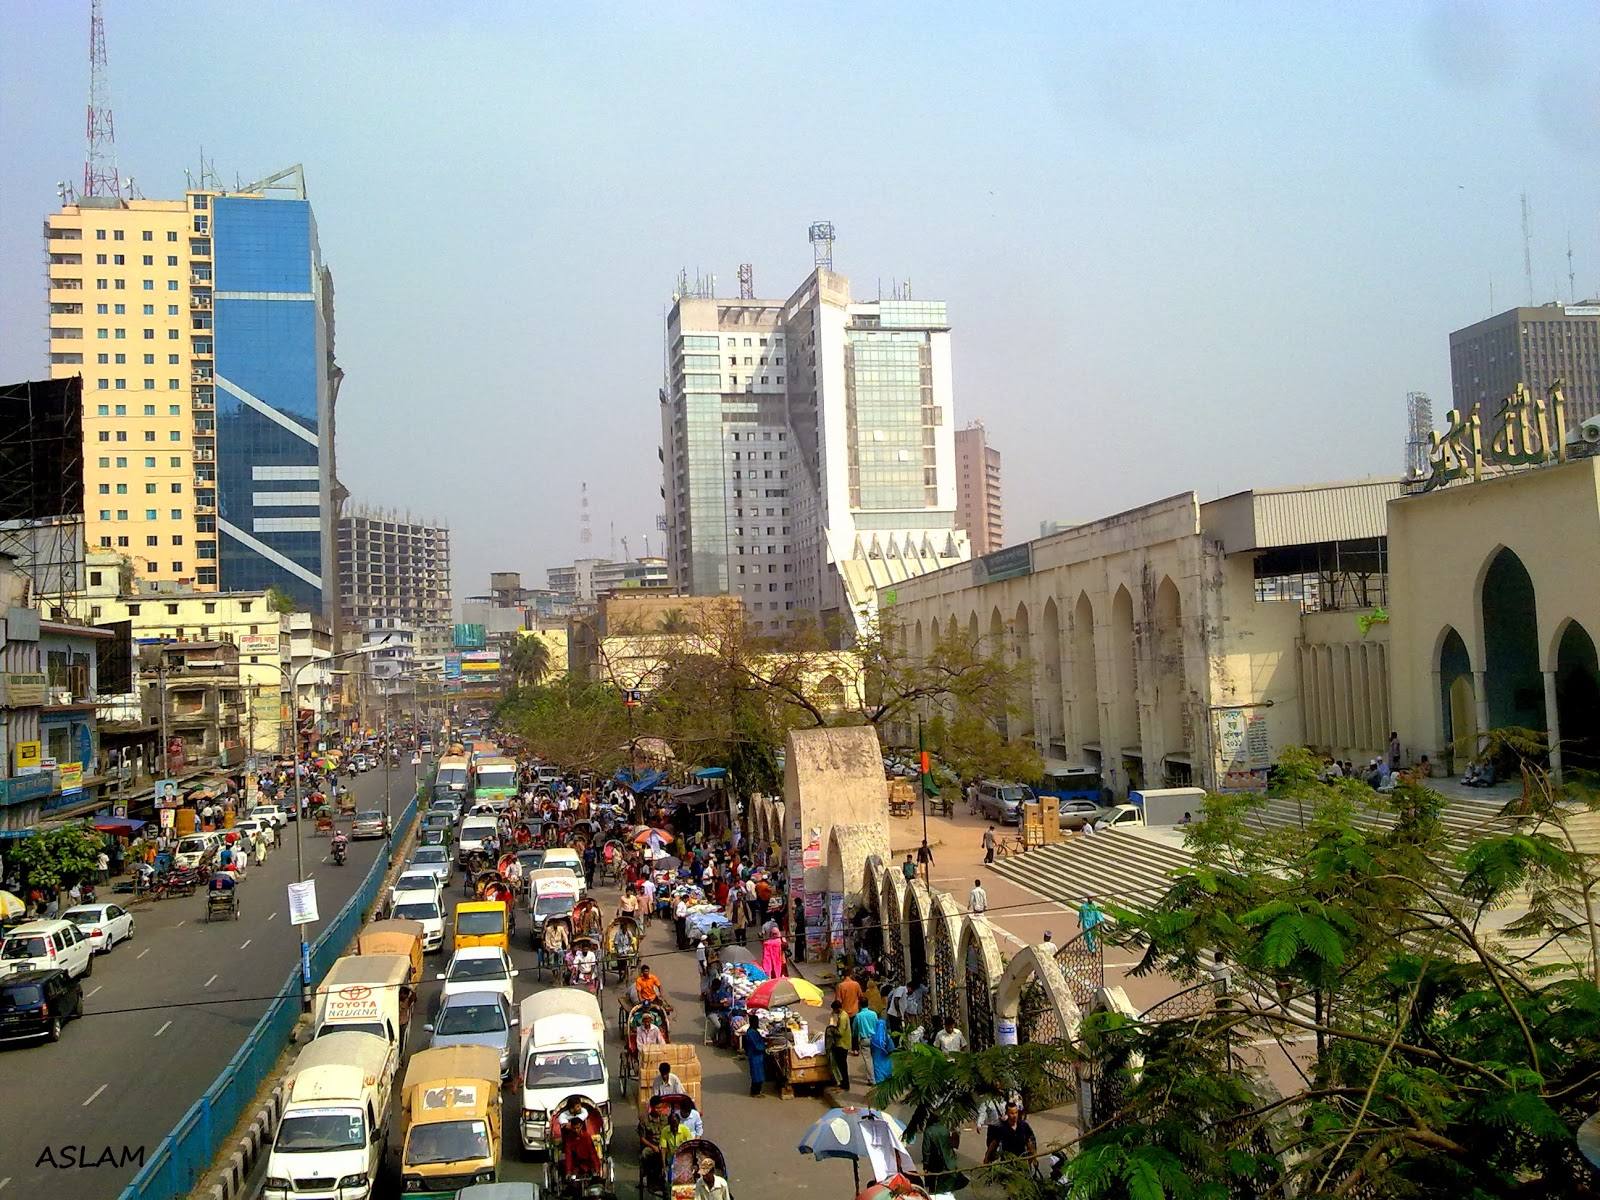 dhaka citys traffic jam and planned The study shown the causes of traffic congestion of dhaka, namely, inefficacy  and poor  violation of traffic rules, defective planning of city roads, excessive  vehicles, illegal occupancy of  'reasons behind the heavy traffic jam in dhaka  city.